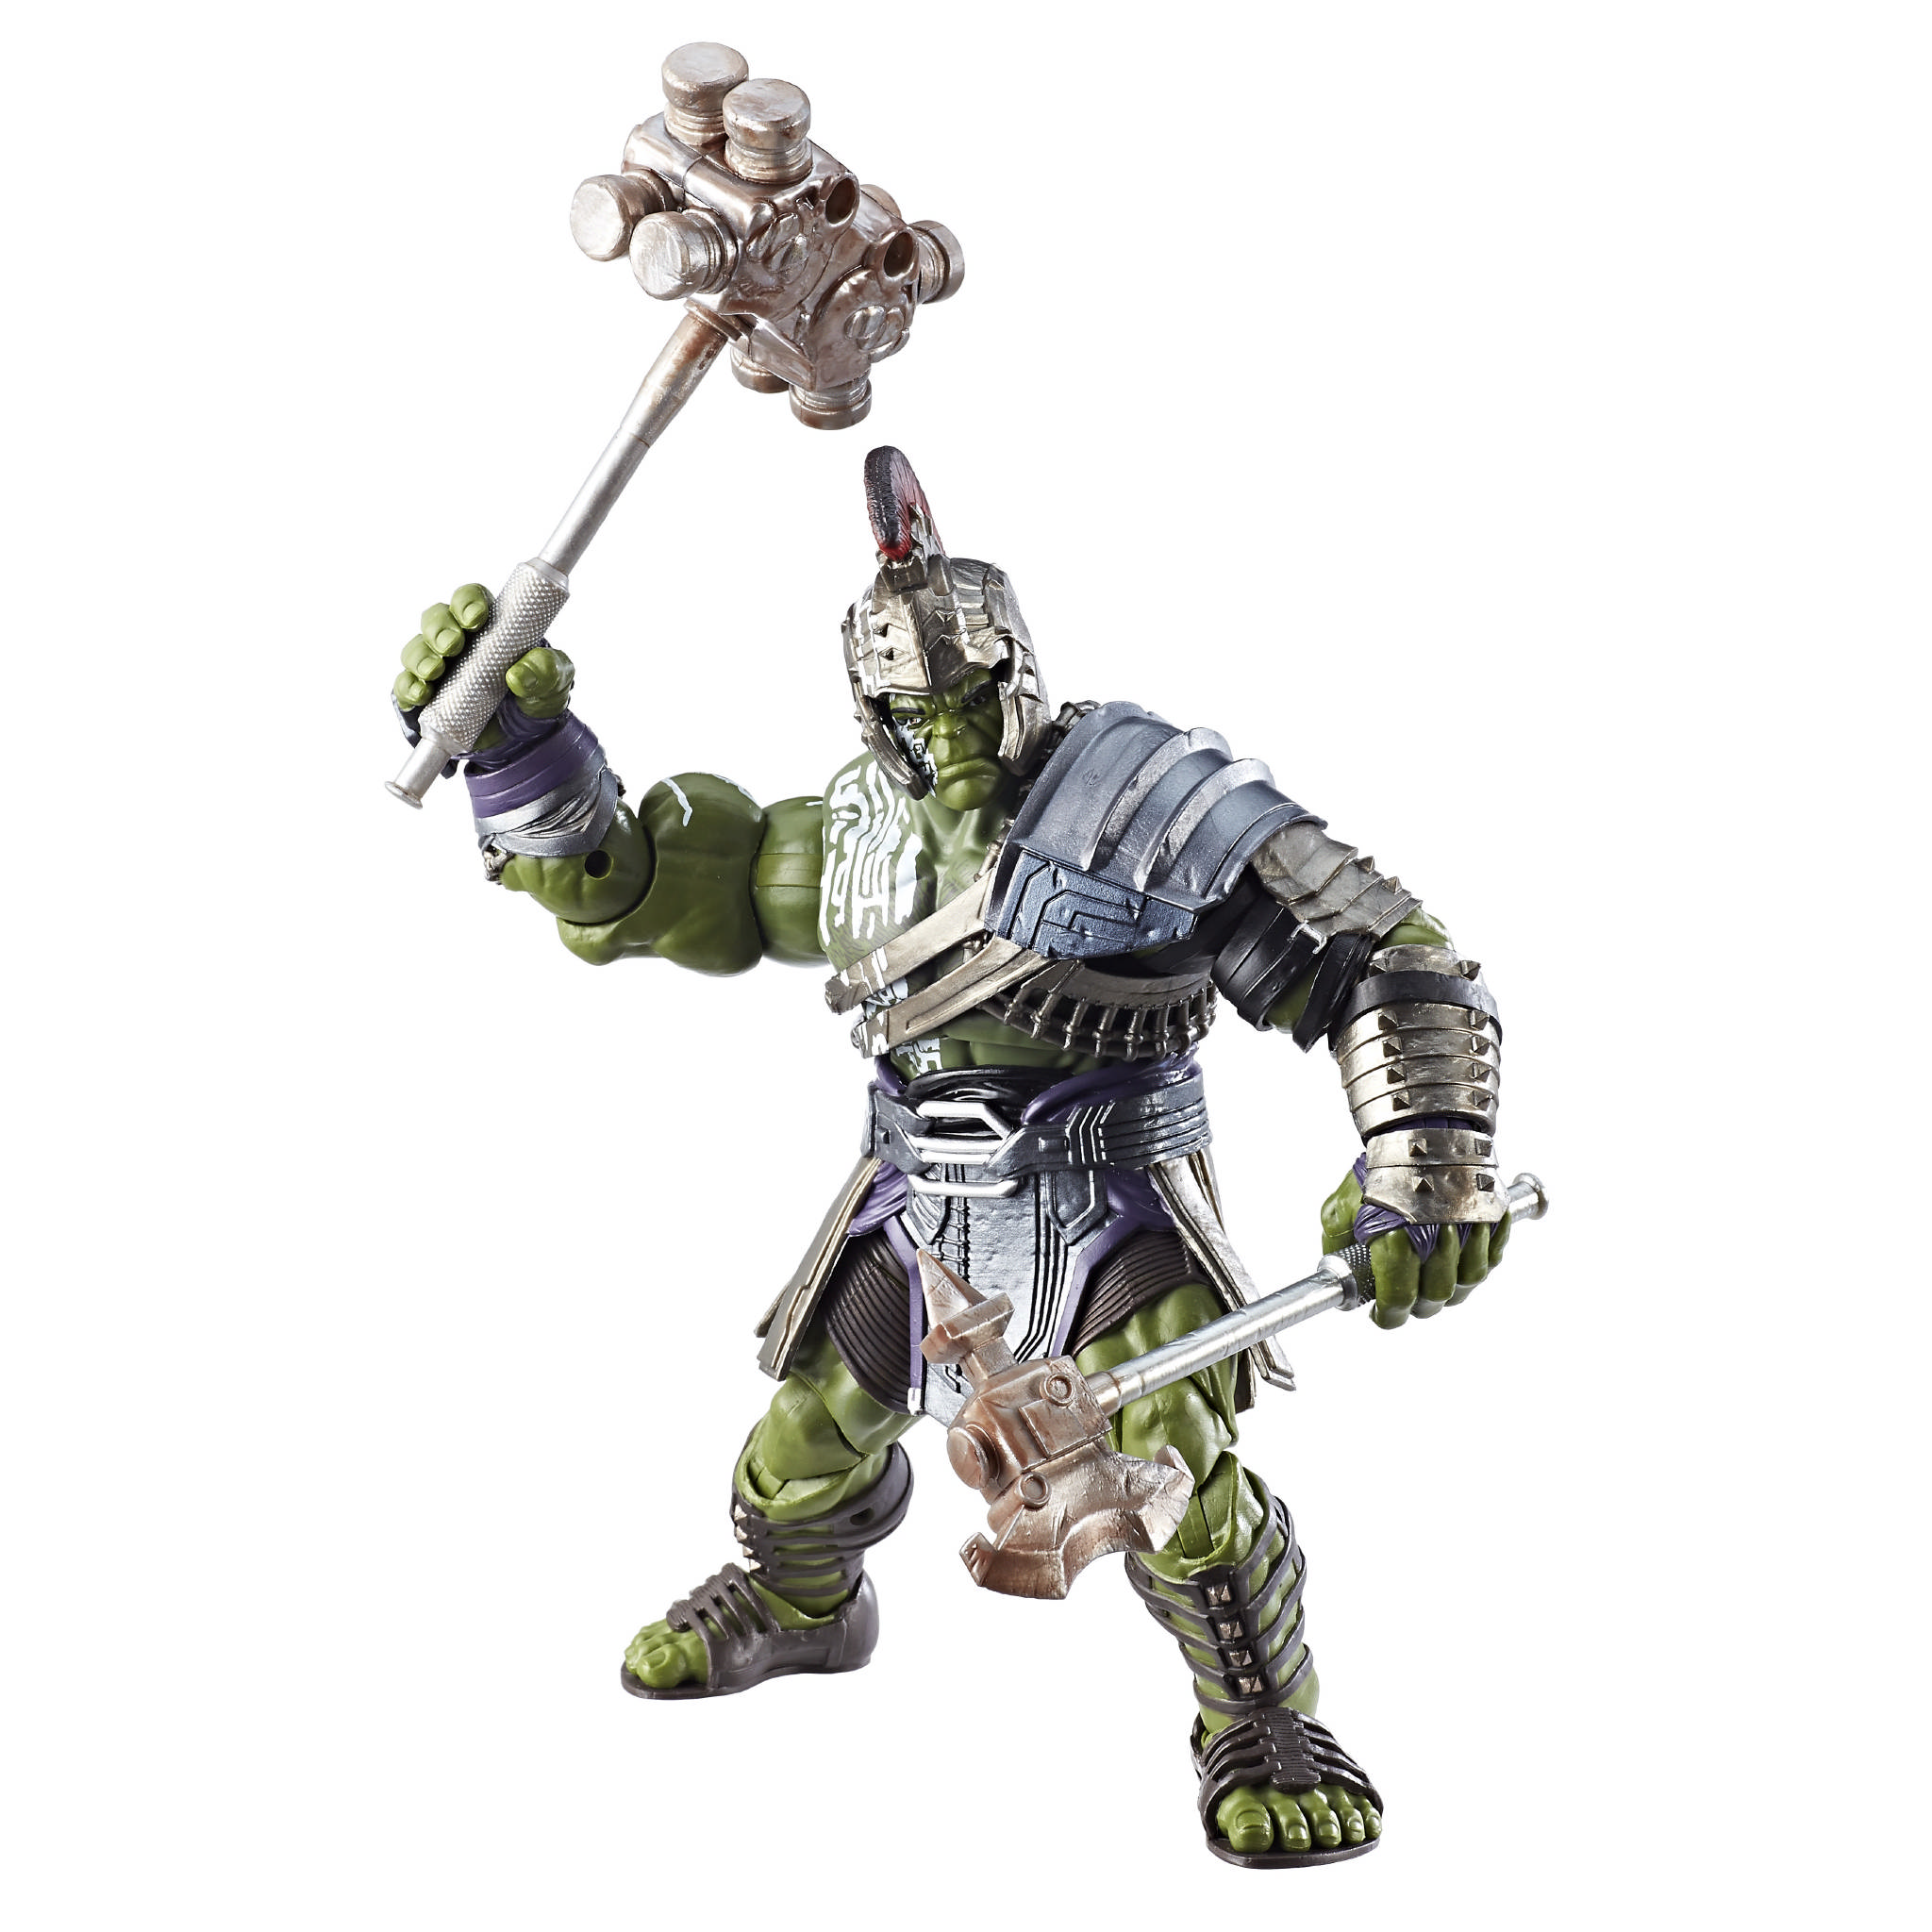 You can build a huge gladiator Hulk with these Thor Ragnarok